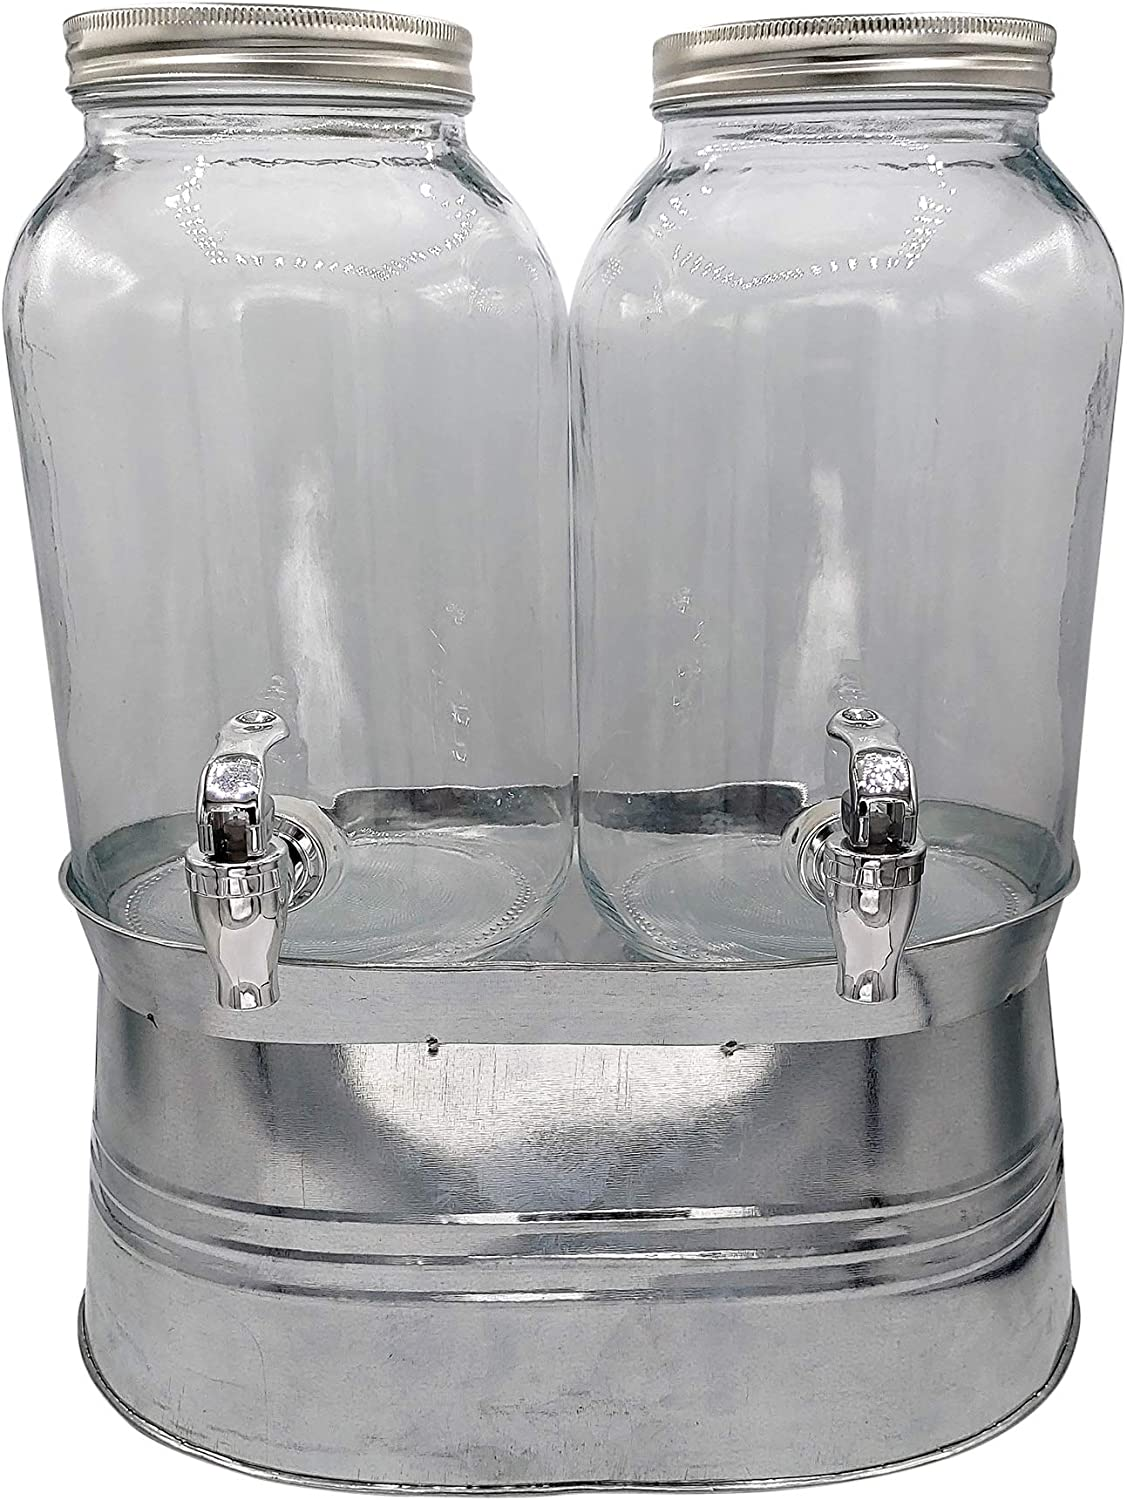 Mason Jar Glass Beverage Dispenser with Spigot - 1 Gallon Drink Dispenser with Stand - Metal Ice Bucket Stand (Double)